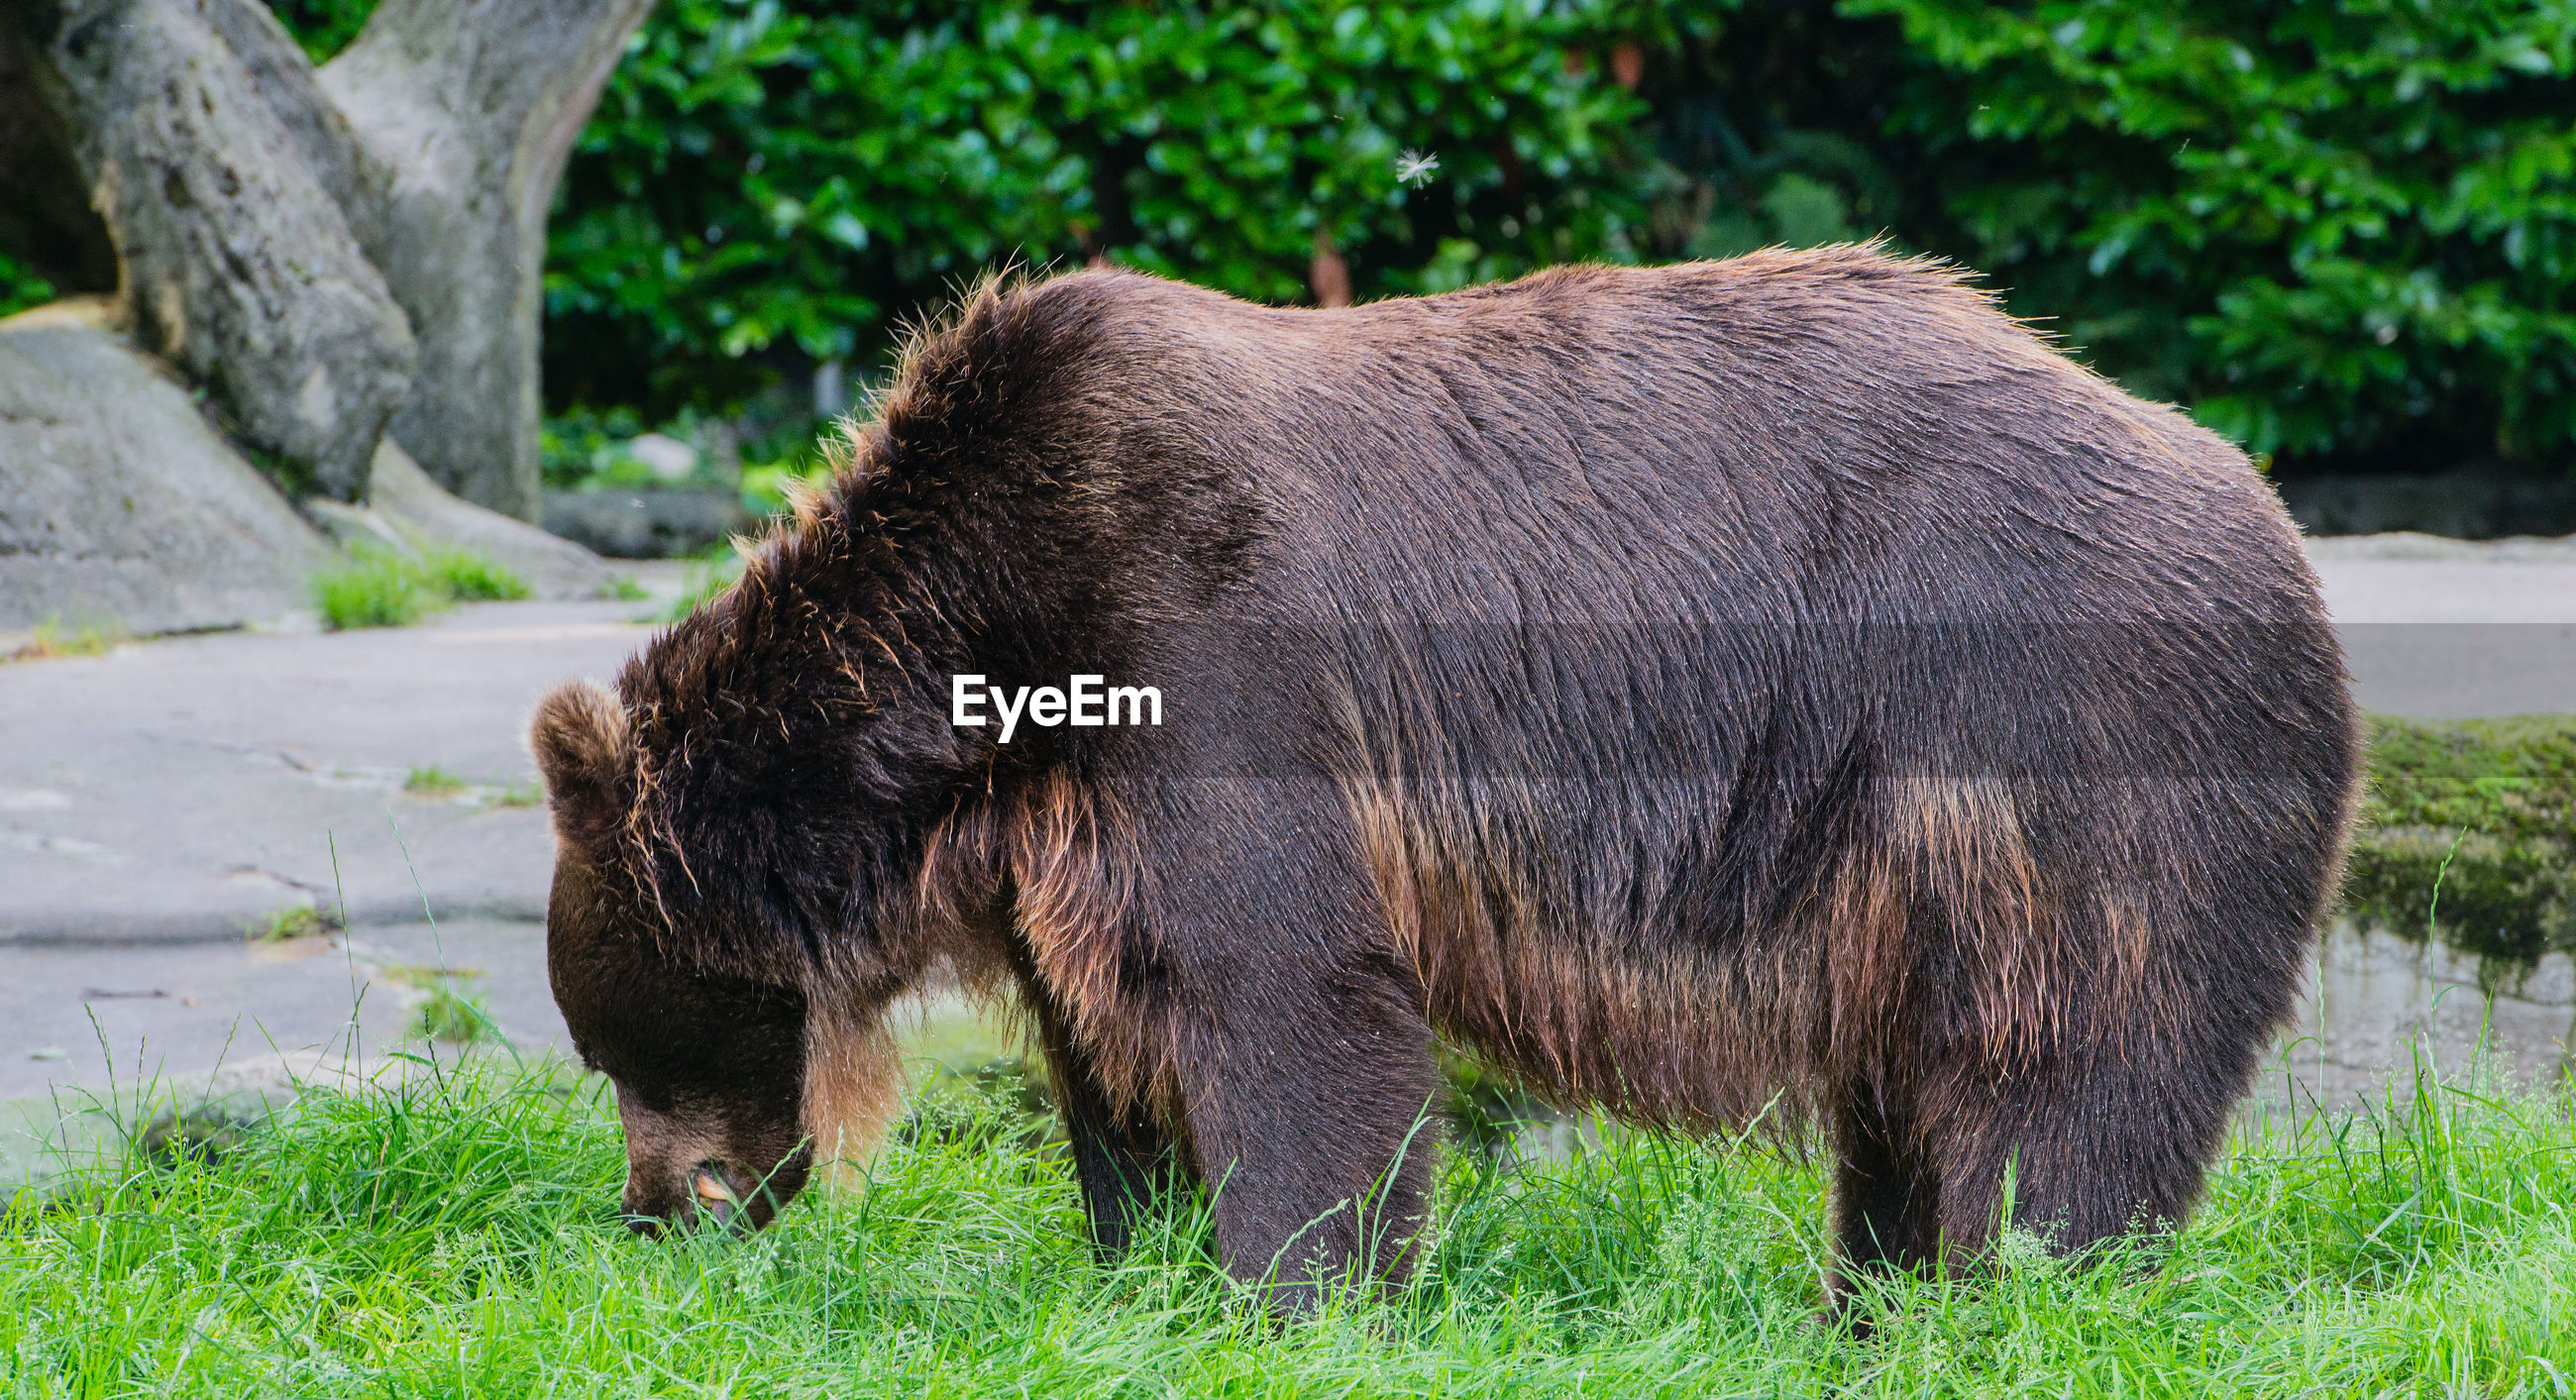 Close-up of bear standing on grassy field in forest